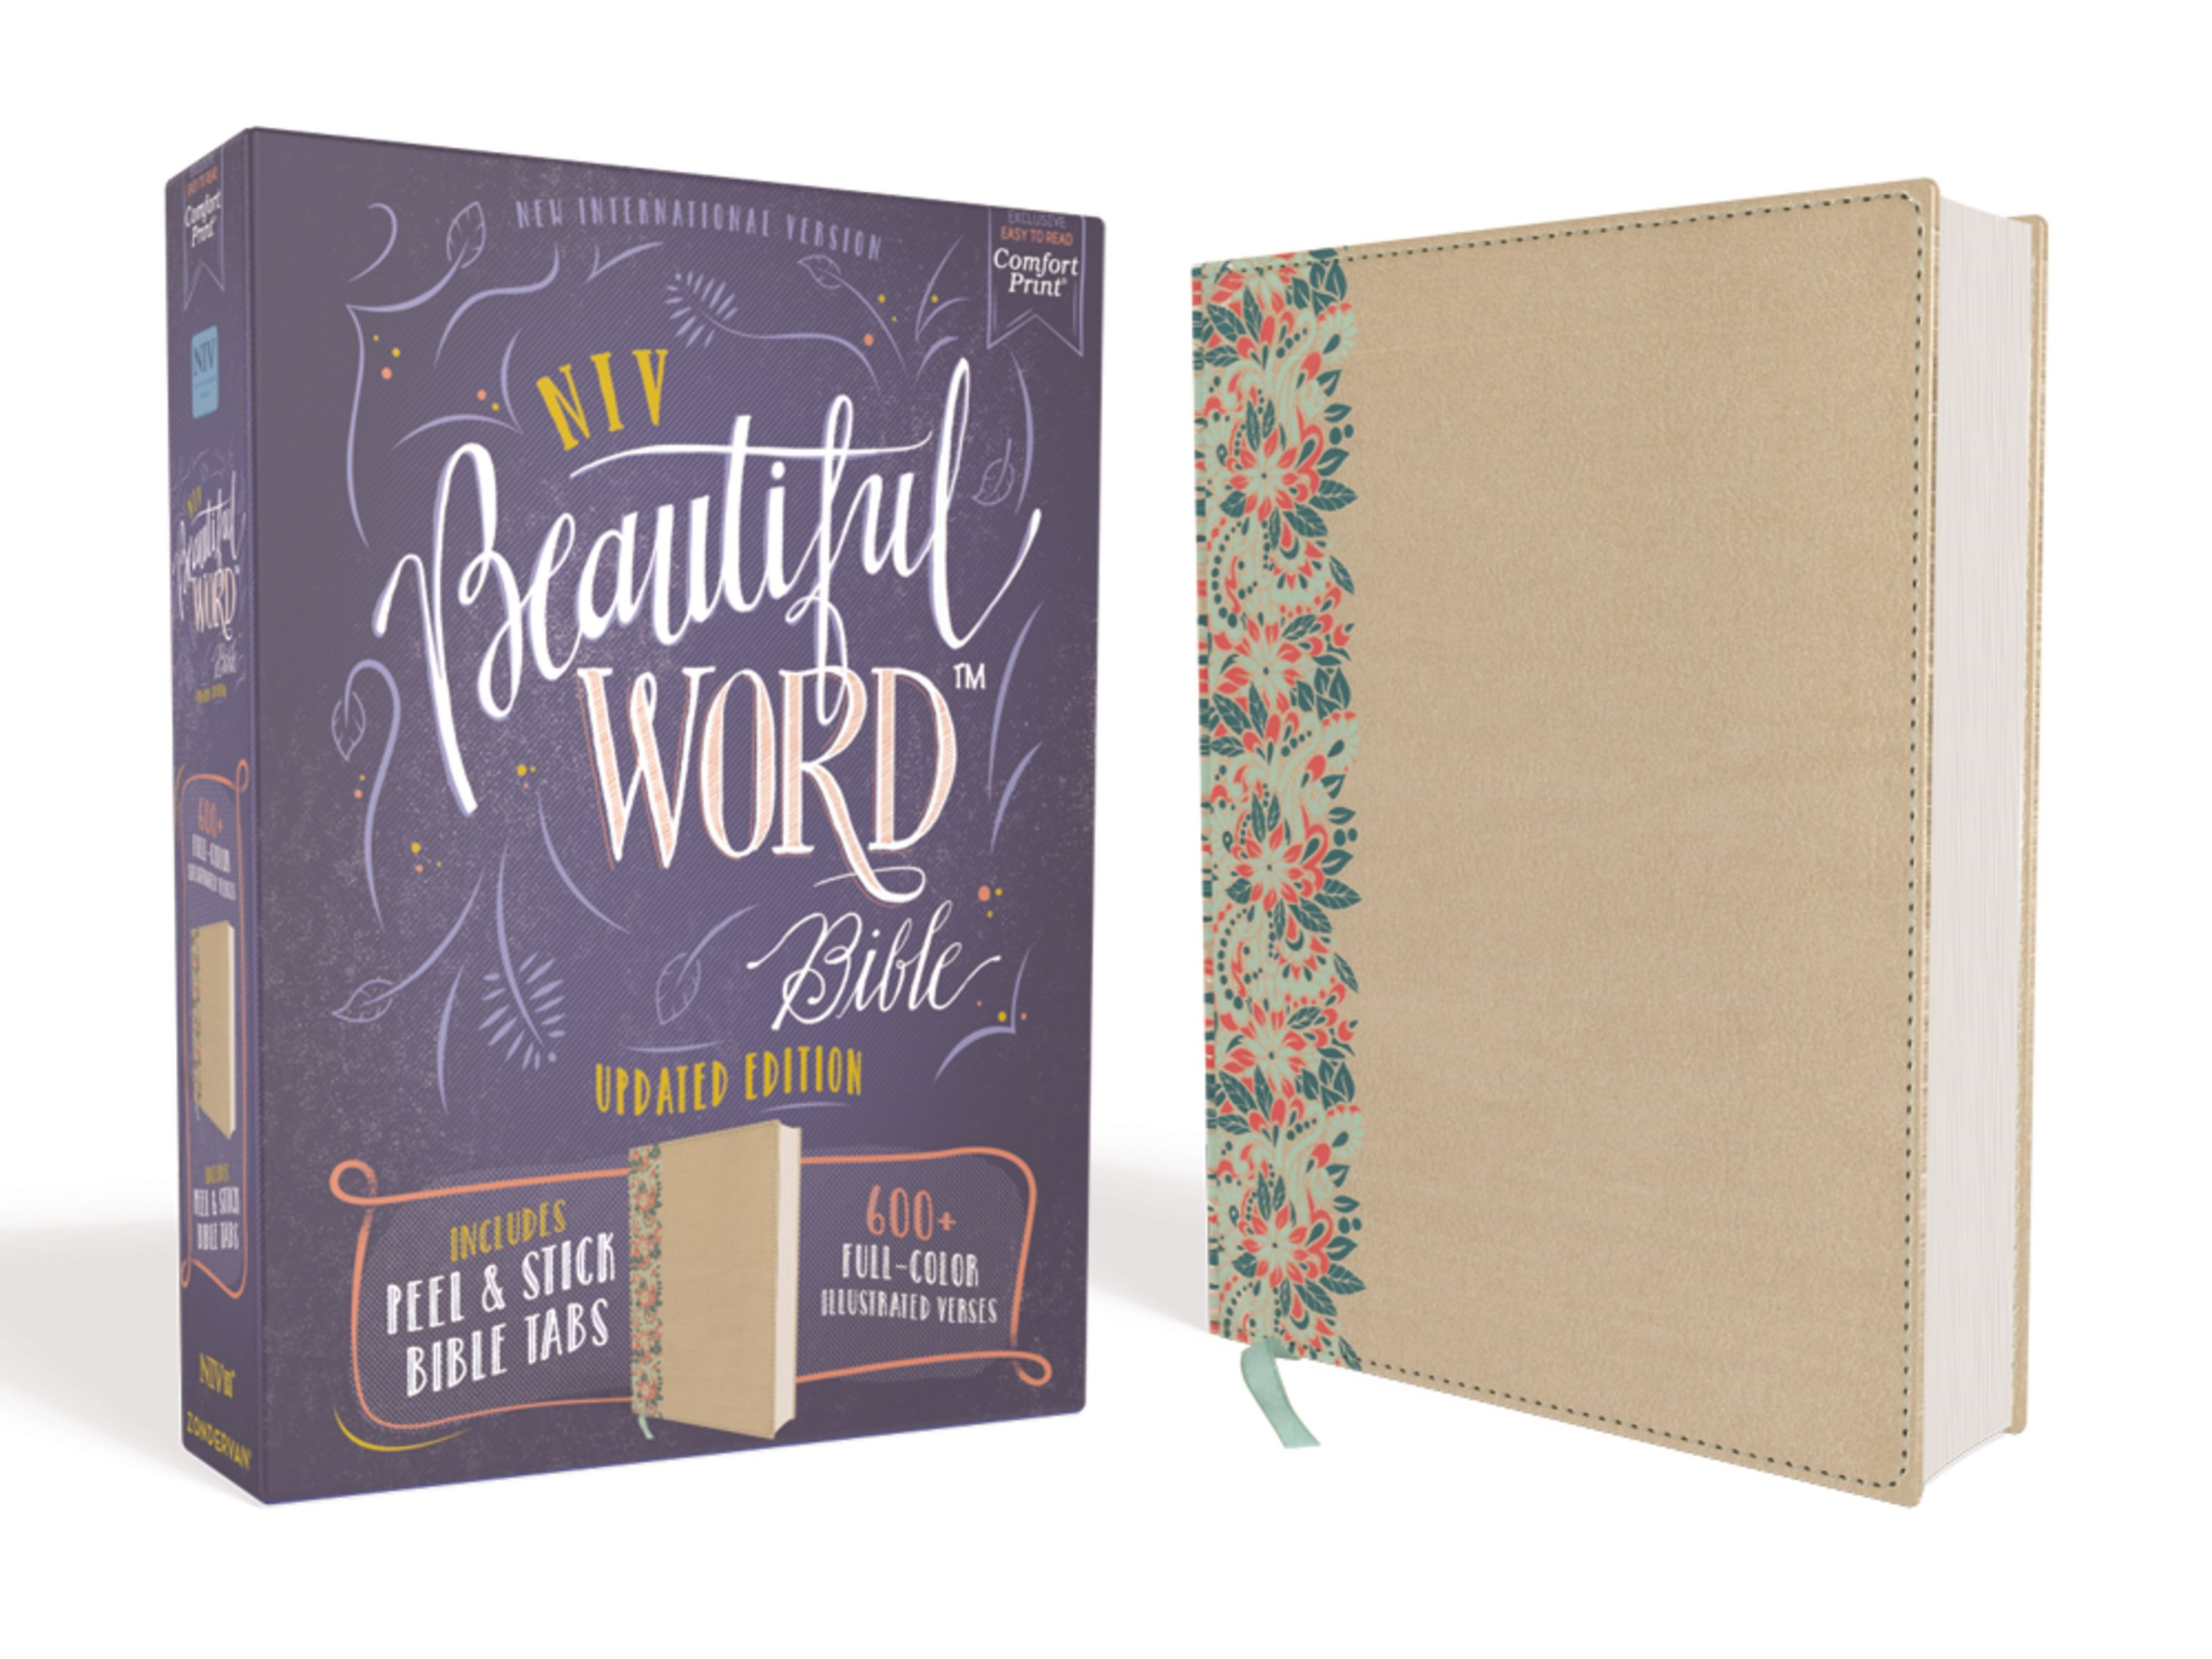 NIV Beautiful Word Bible (Updated Edition)-Gold/Floral Leathersoft